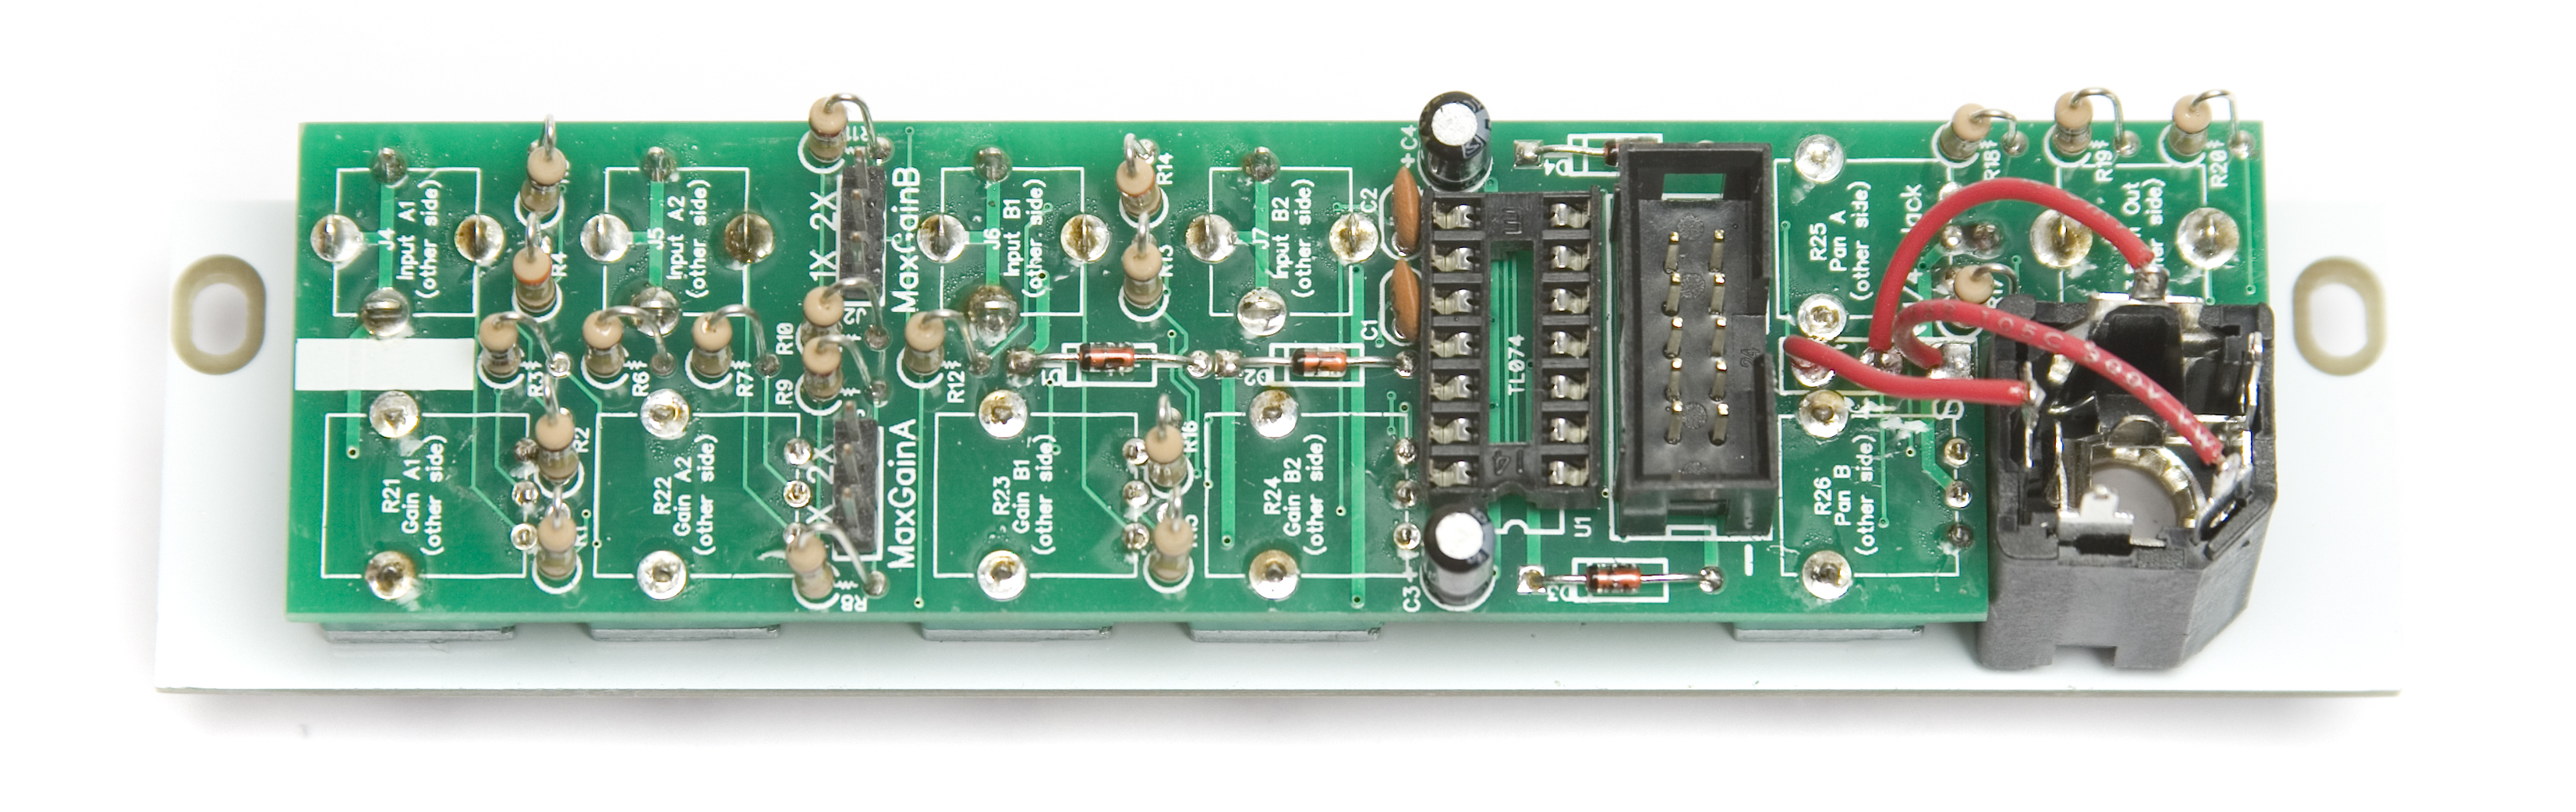 1 4 Jack Wiring To Circuit Board Trusted Diagram Stereo Input Mst Output Mixer Assembly Instructions Synthrotek